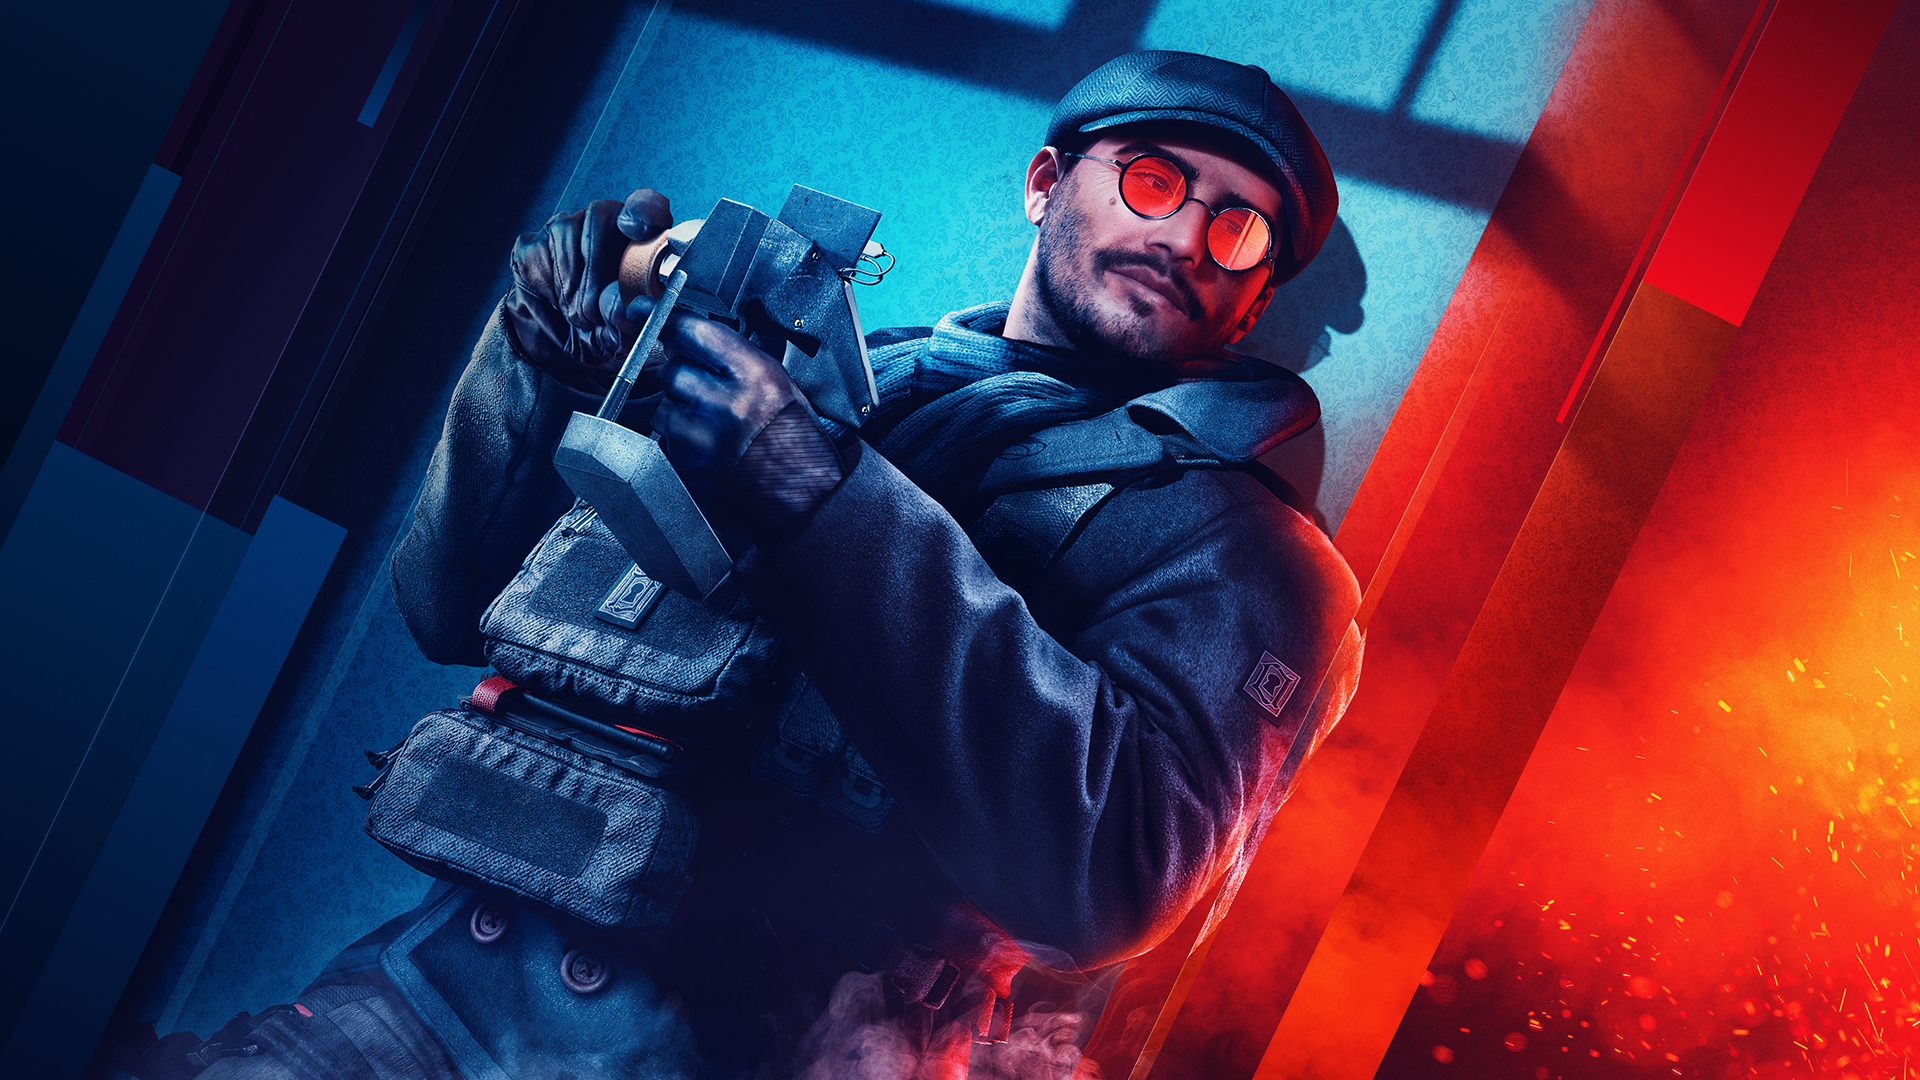 cross-progression-and-crossplay-are-in-the-works-for-rainbow-six-siege